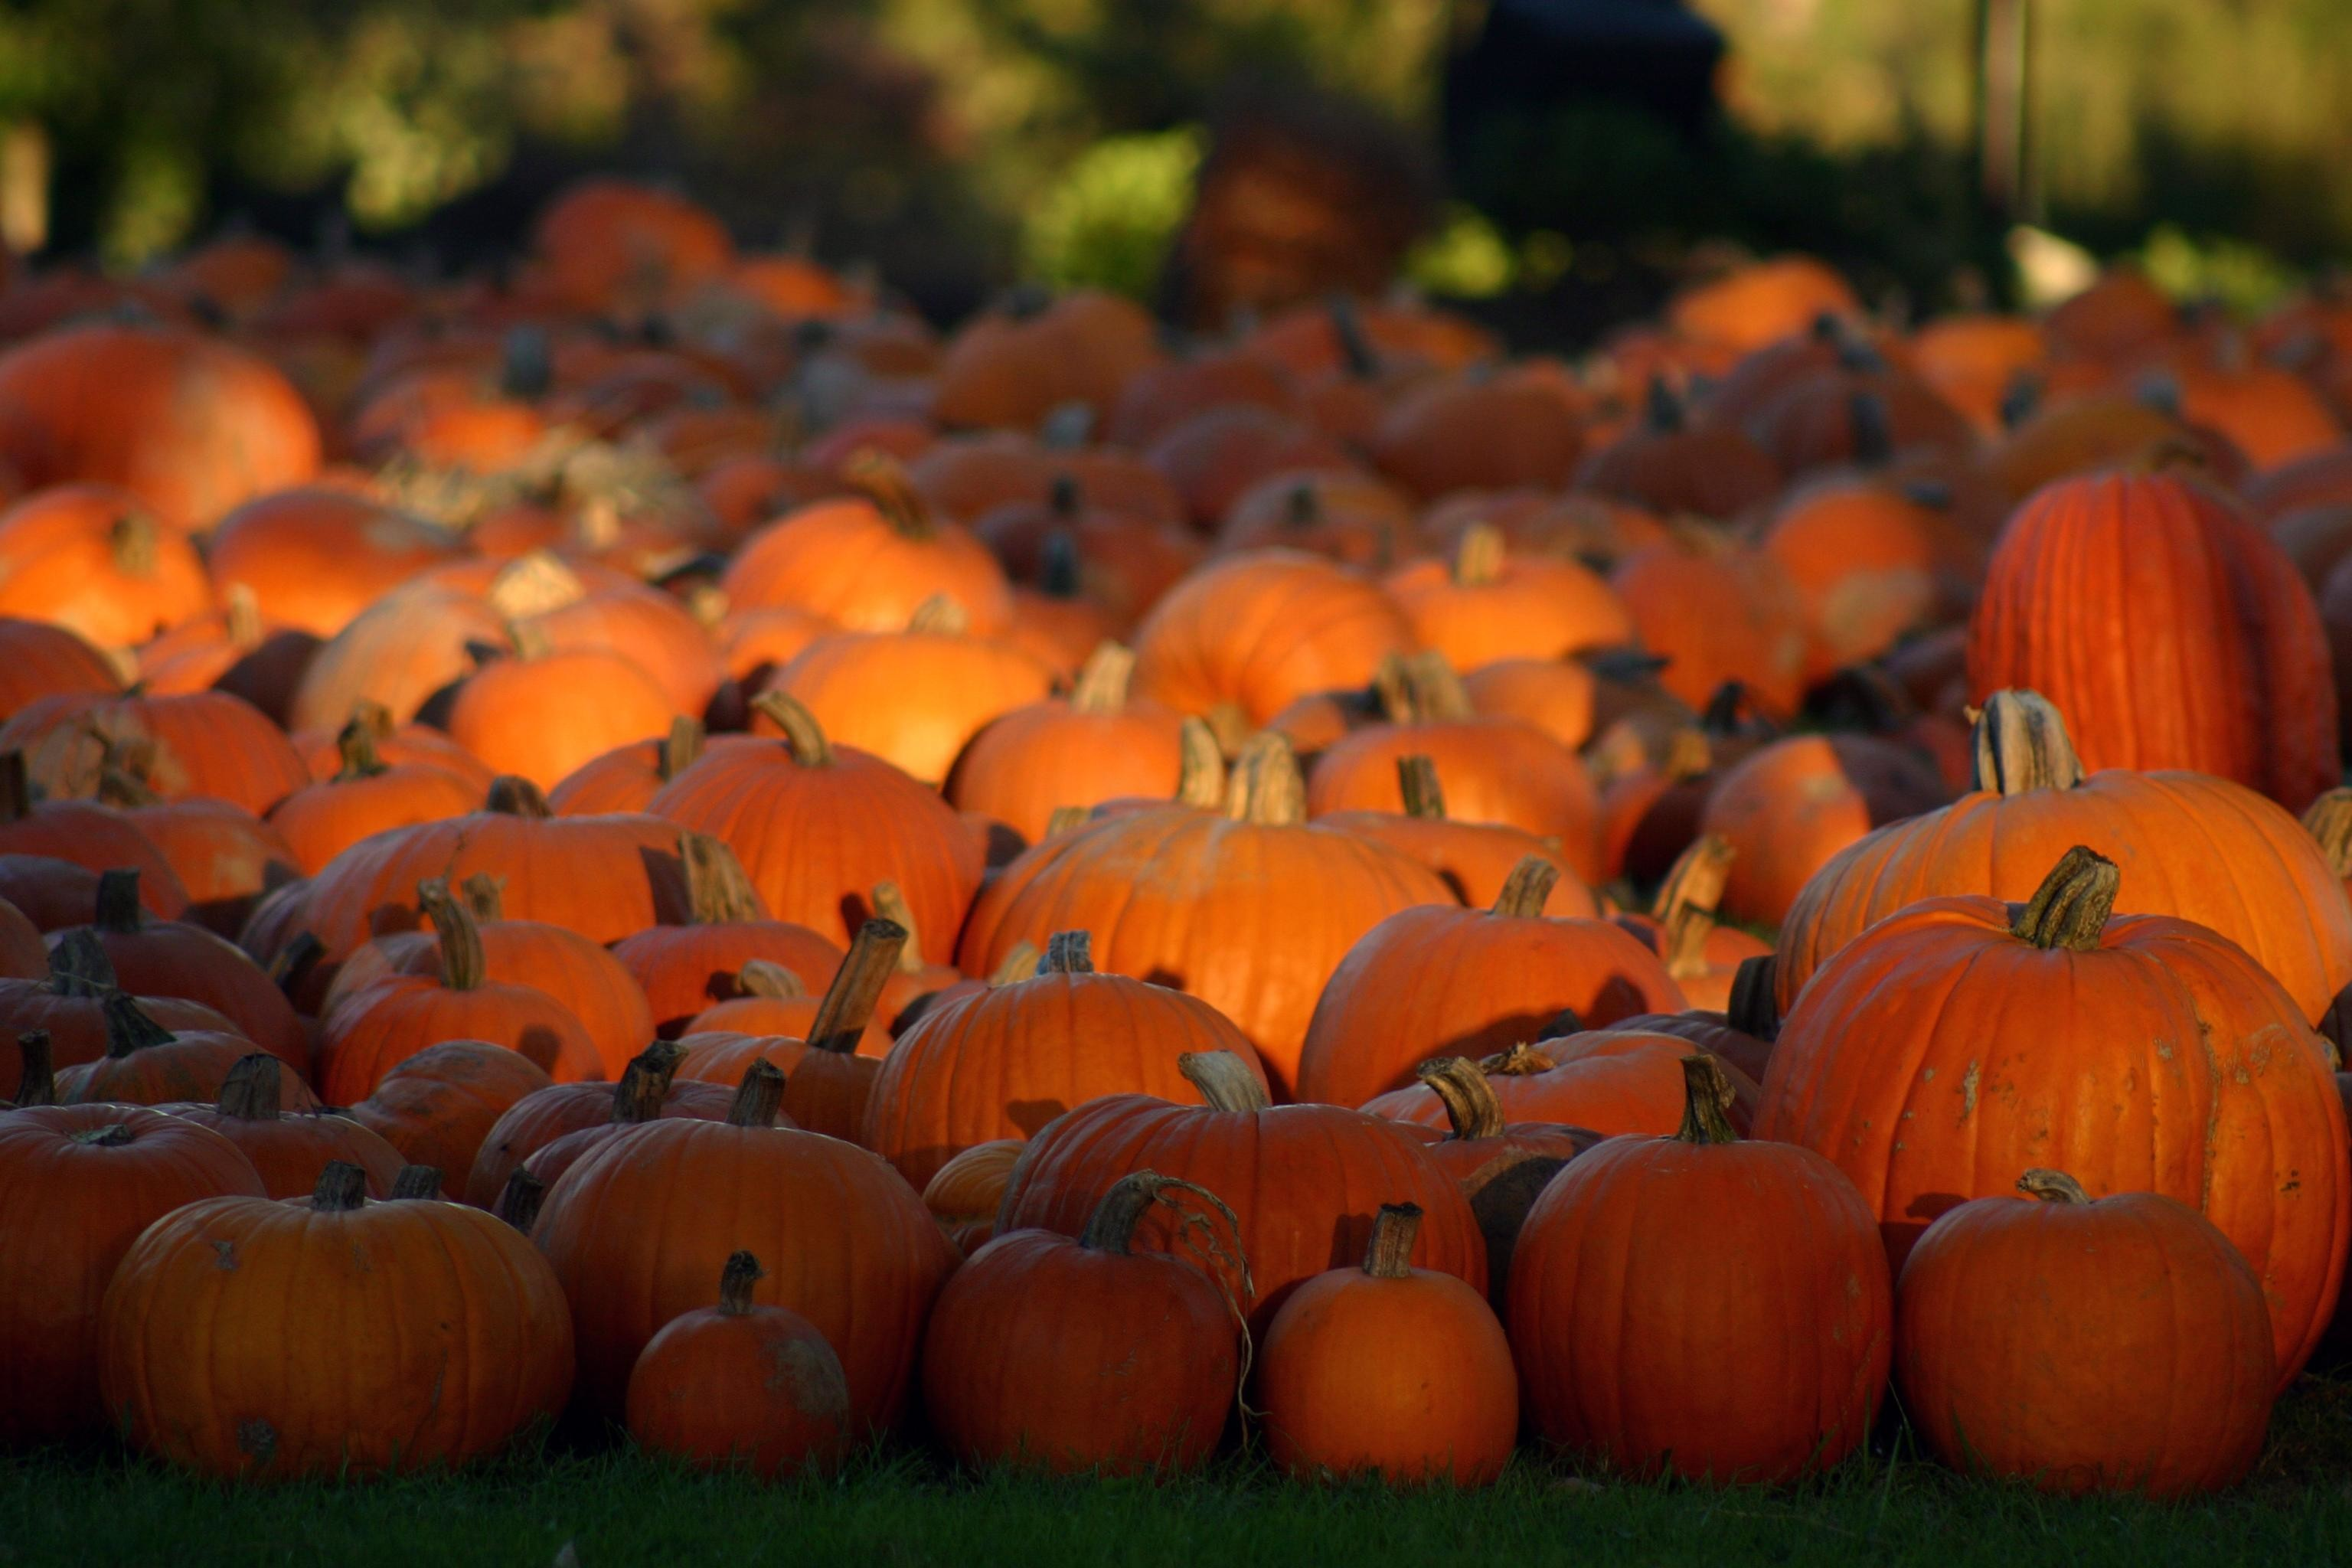 Explore Fall Pumpkins, Halloween Pumpkins, and more!